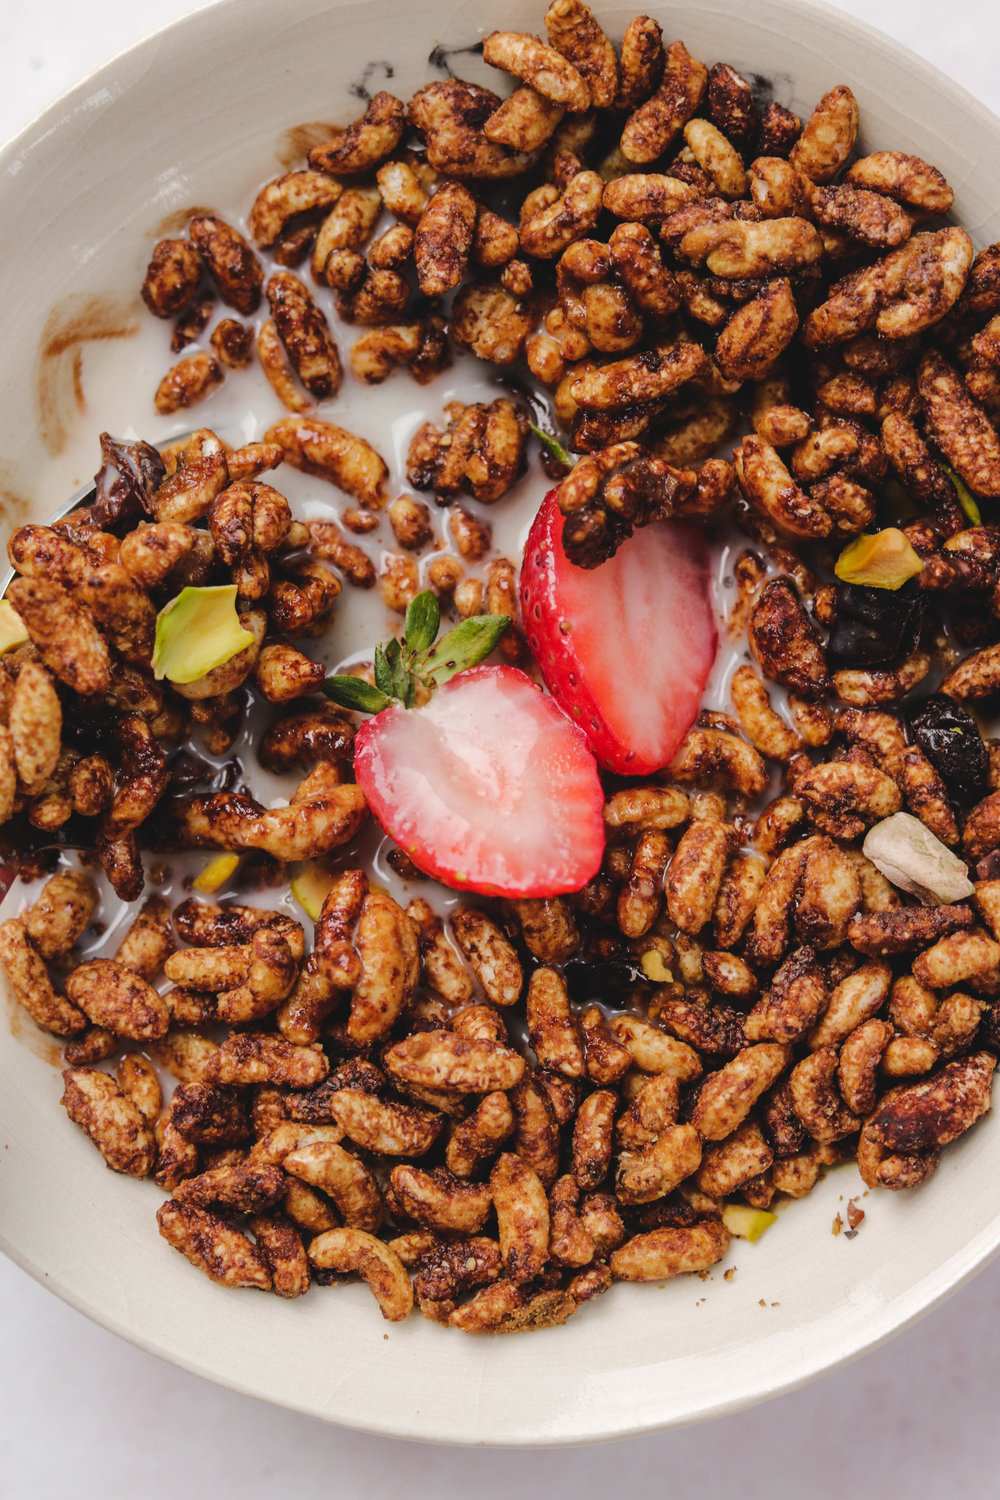 DIY Vegan Chocolate Hazelnut Cereal Closecup (1 of 1).jpg